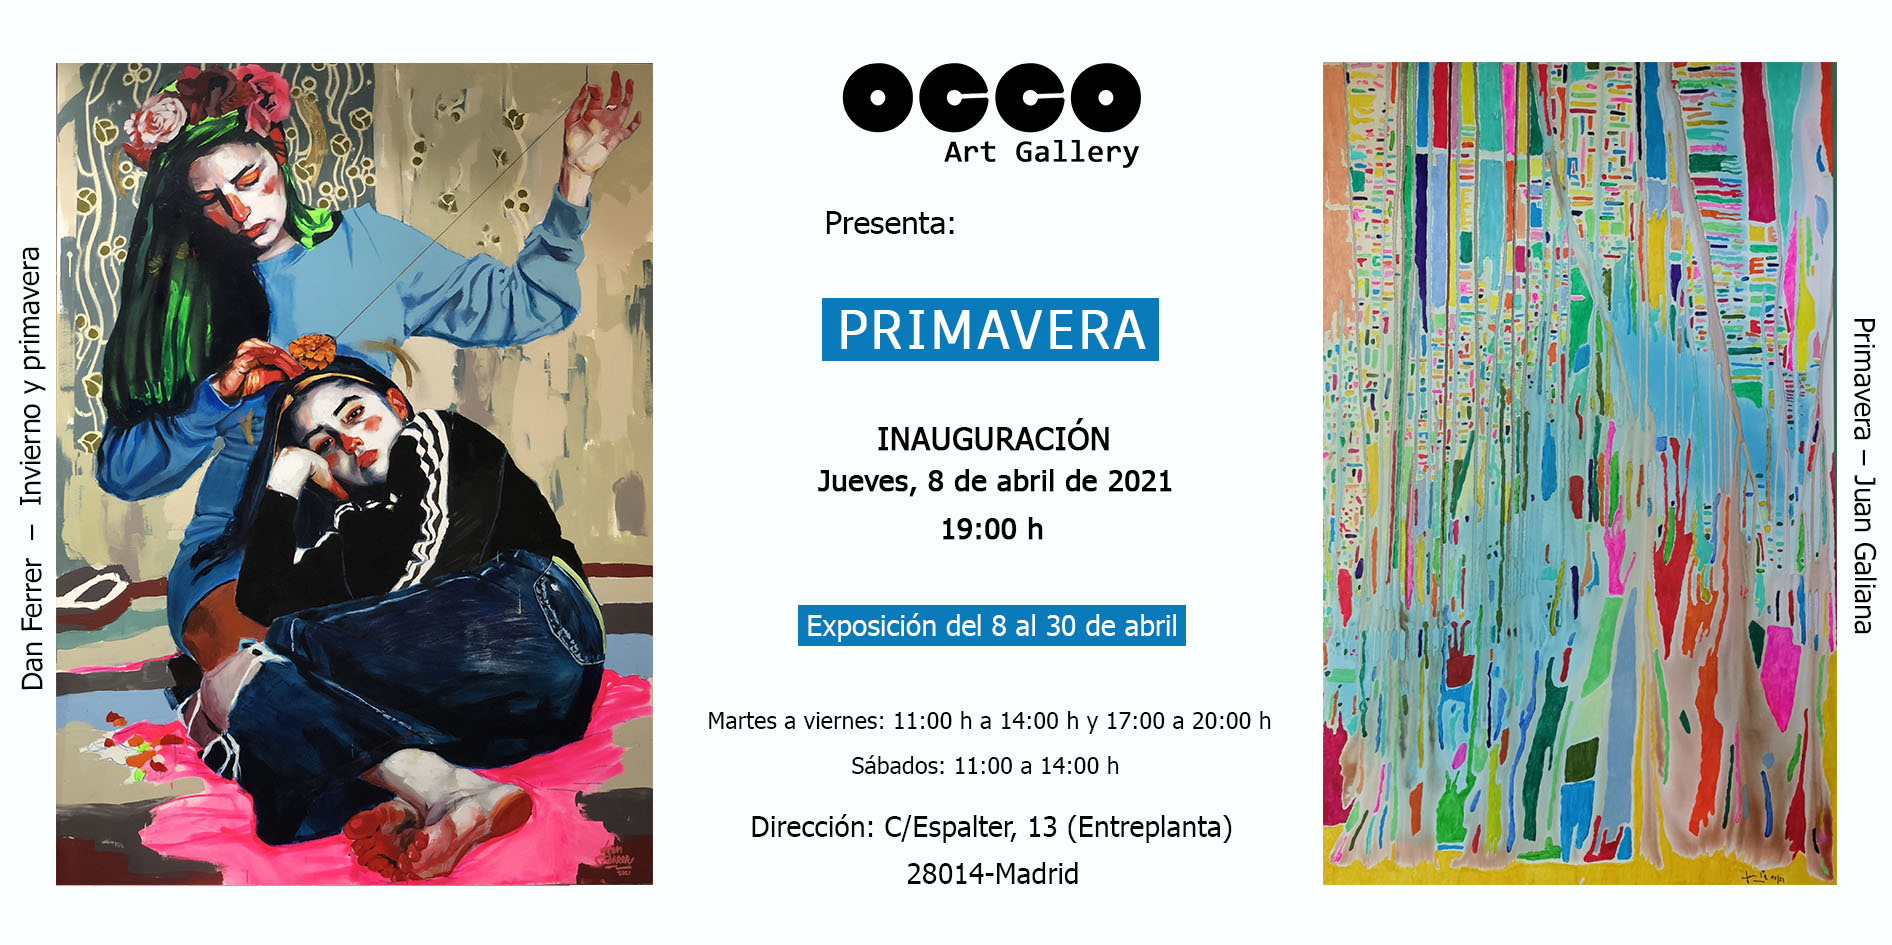 OCCO Art Gallery. Calle Espalter 13. 28014 – Madrid (Spain)